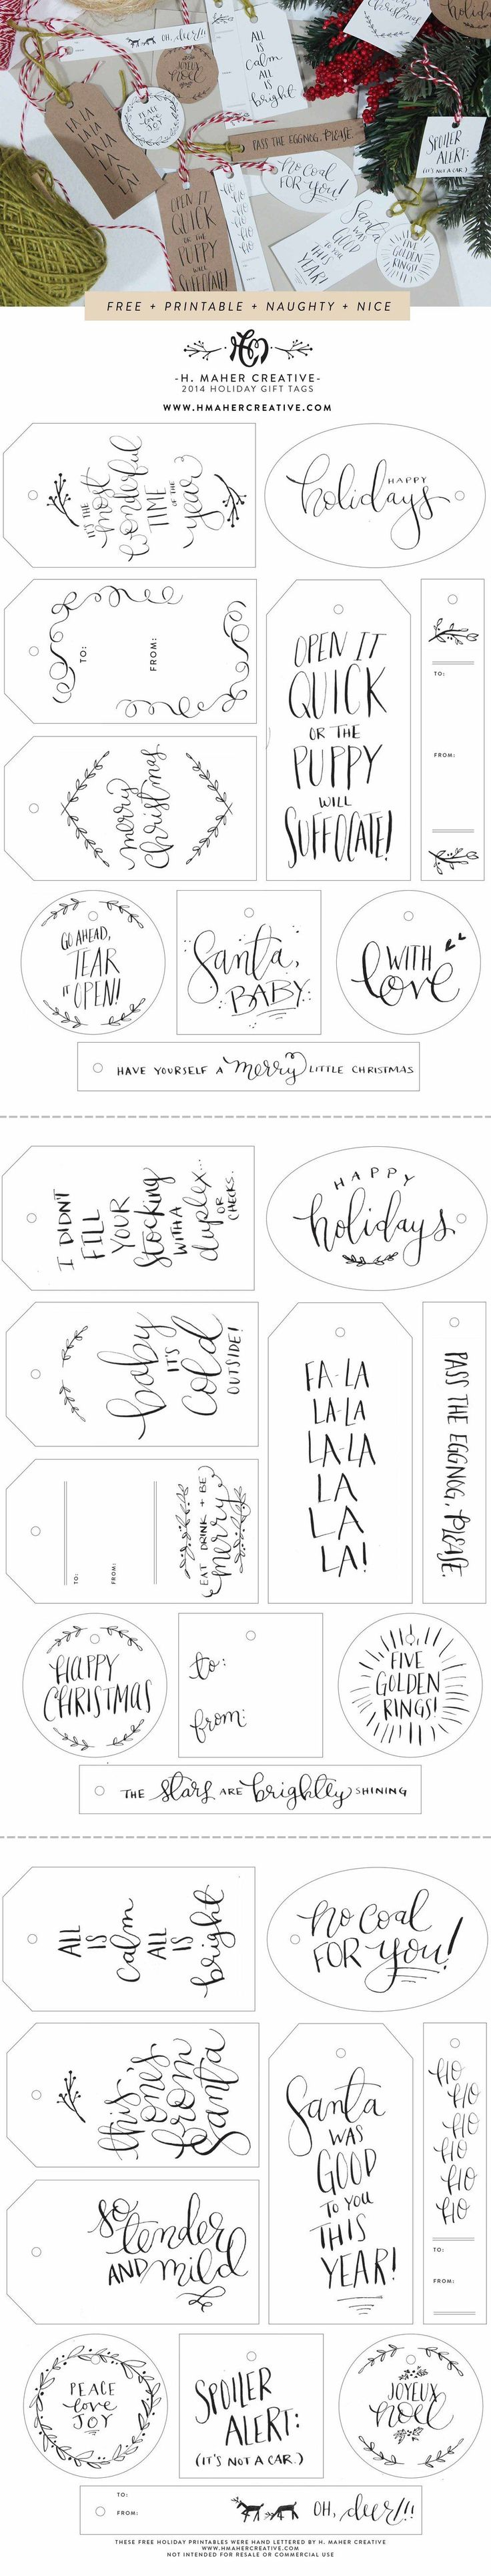 UPDATE, Y'ALL! If you like these lovely gift tags, be sure to check out our  stationery line, Wink Wink Paper Co.! We just launched our 2015 Holiday  Collection!    I made you something!! My gift to you this Holiday Season is a collection  of 30 adorably hand-lettered gift tags that you can easily print out at  home, snip-snip, tie-tie, and BAM! Gorgeous gift wrapping, because you're a  holiday boss. These calligraphed lovelies are (characteristically) naughty  and nice, with sentiments…